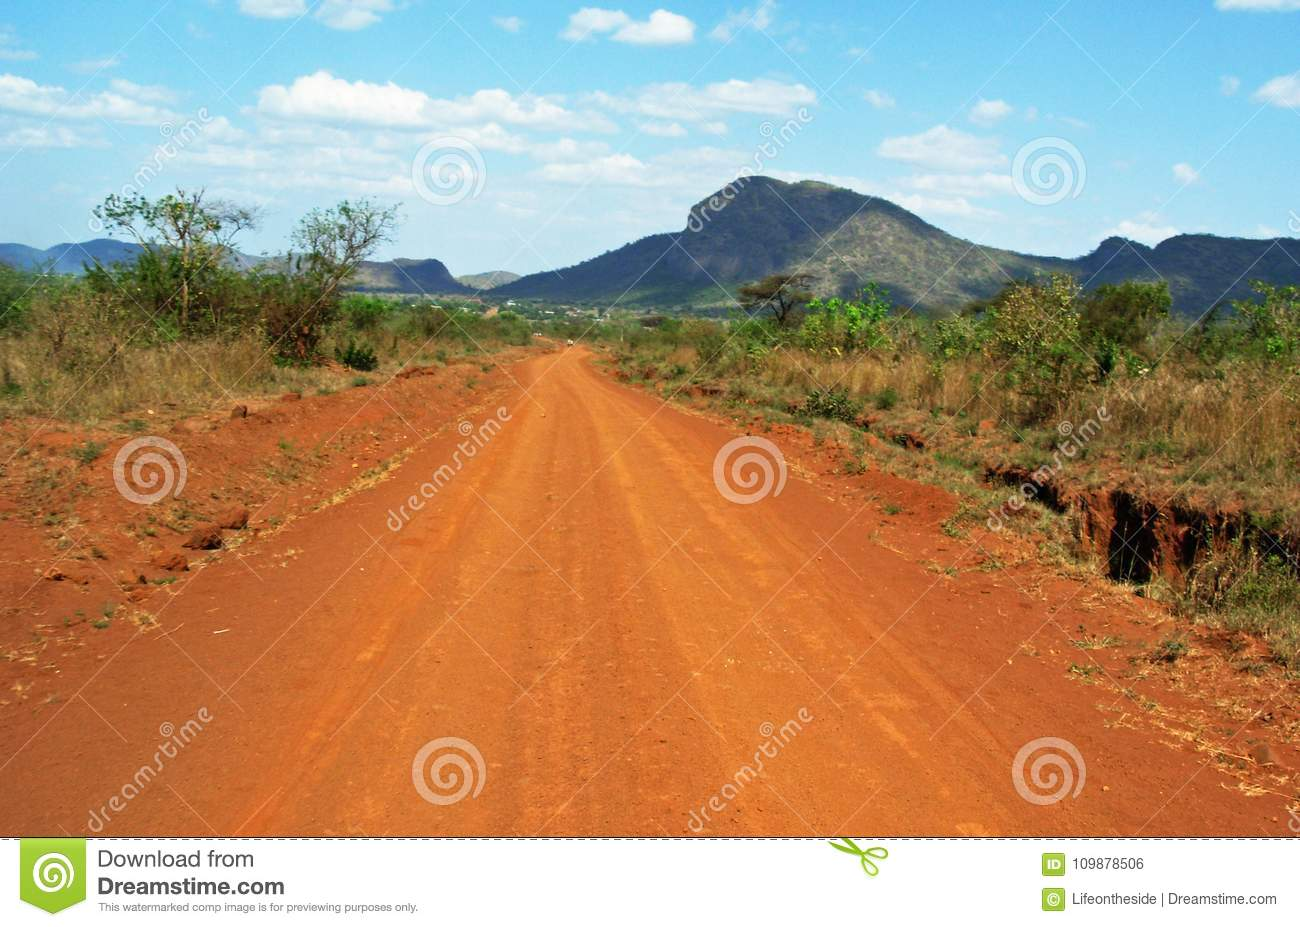 Stunning background landscape driving red dusty dirt roads of Africa